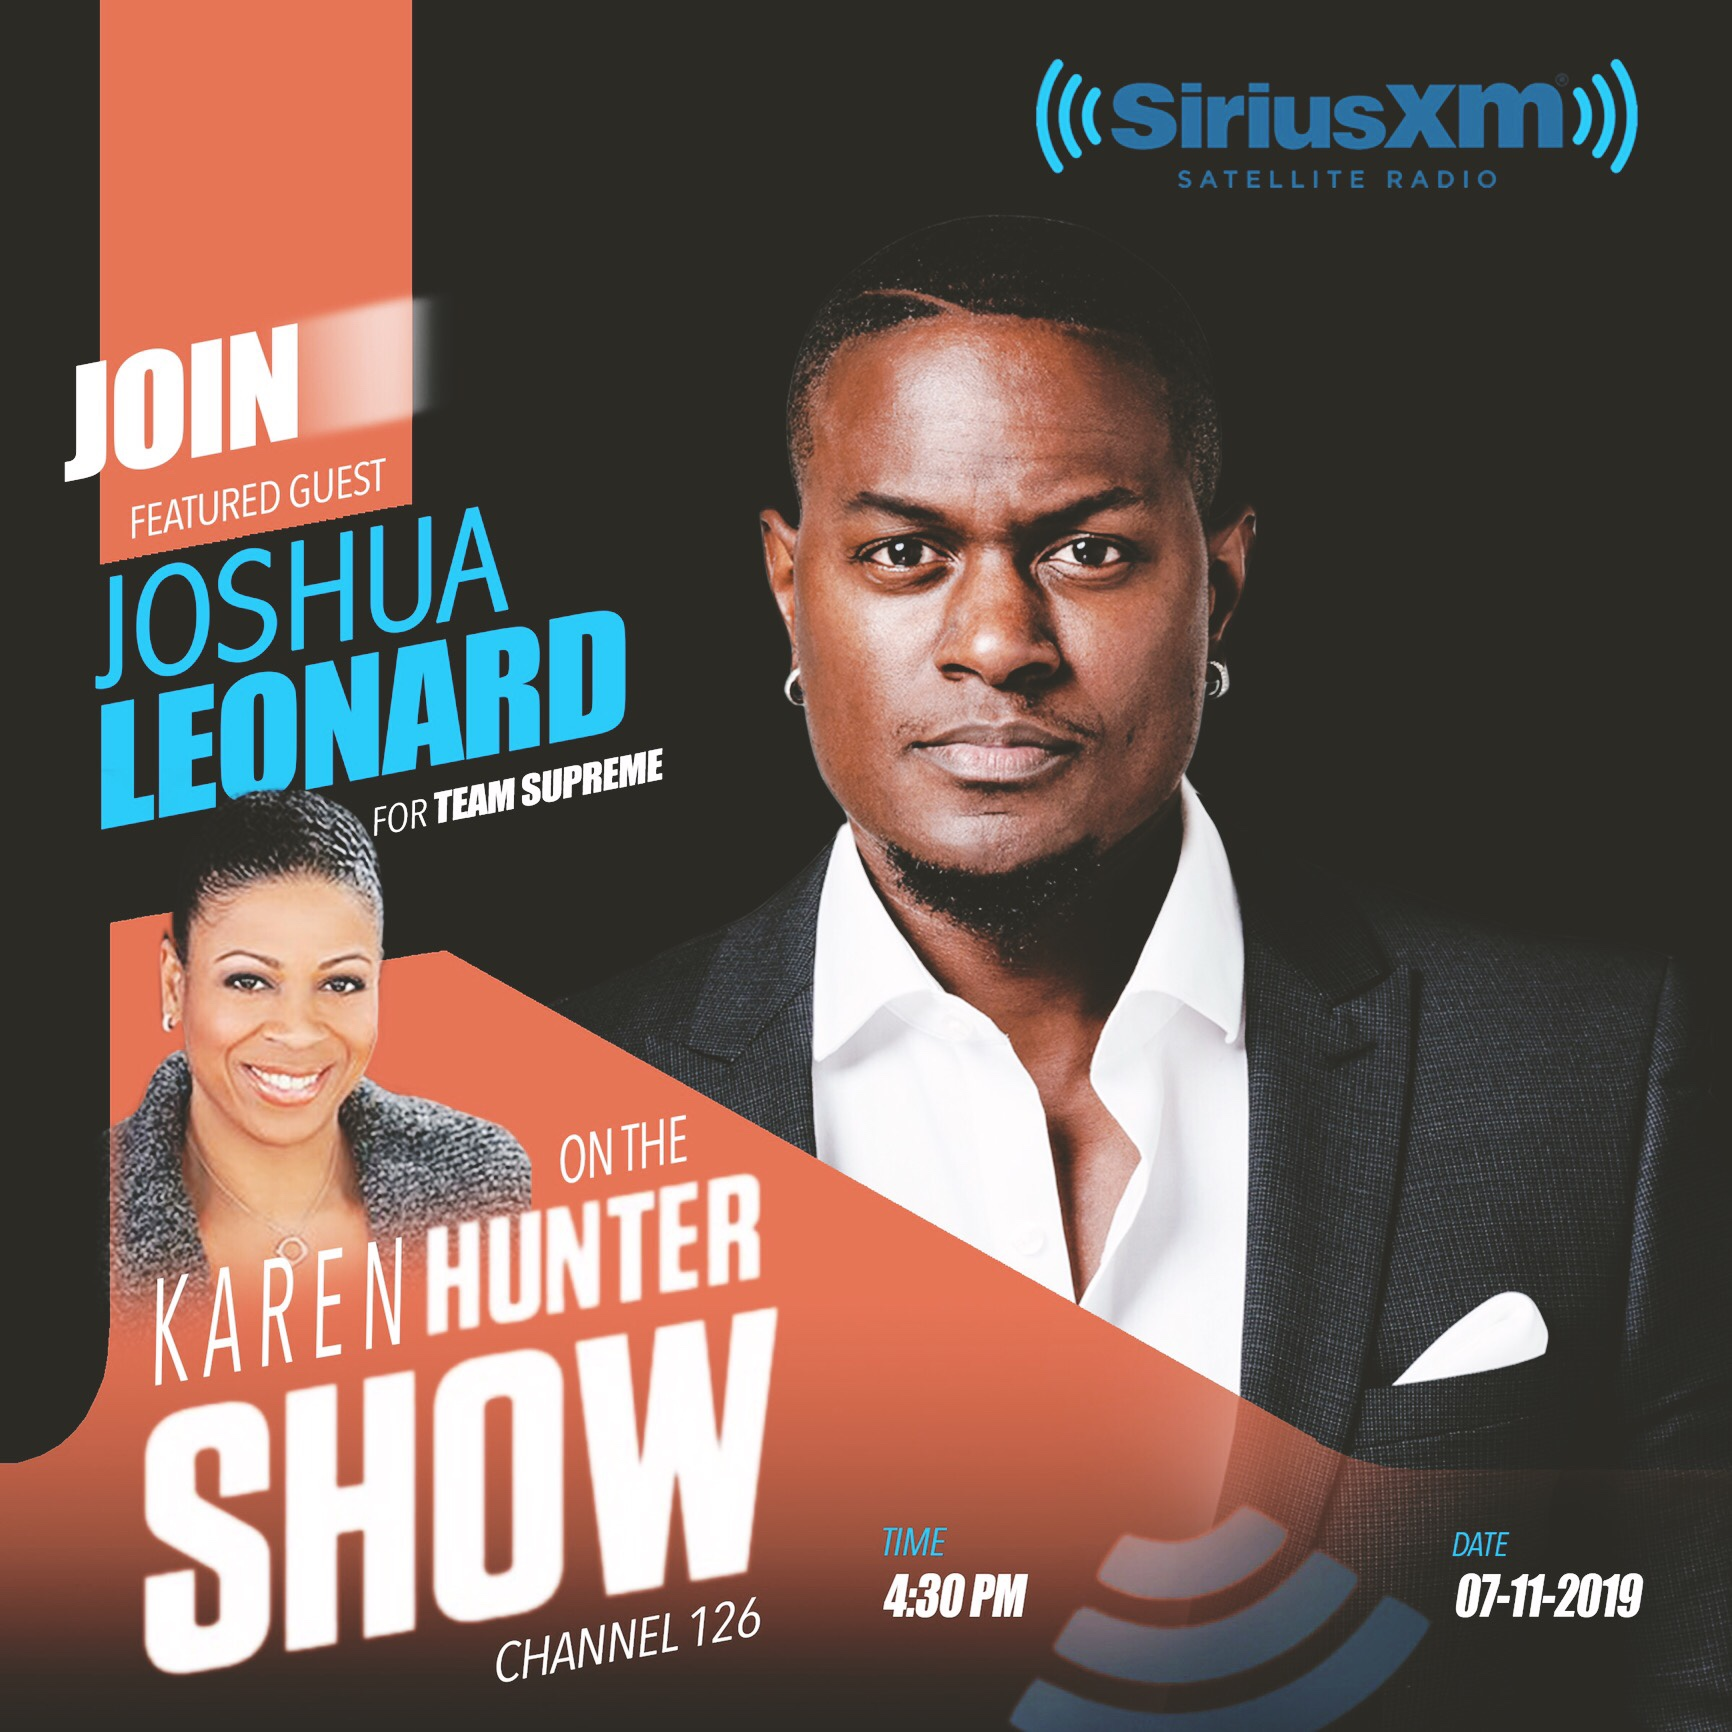 The Karen Hunter Show - Joshua Leonard is featured on The Karen Hunter Show discussing Team Supreme.